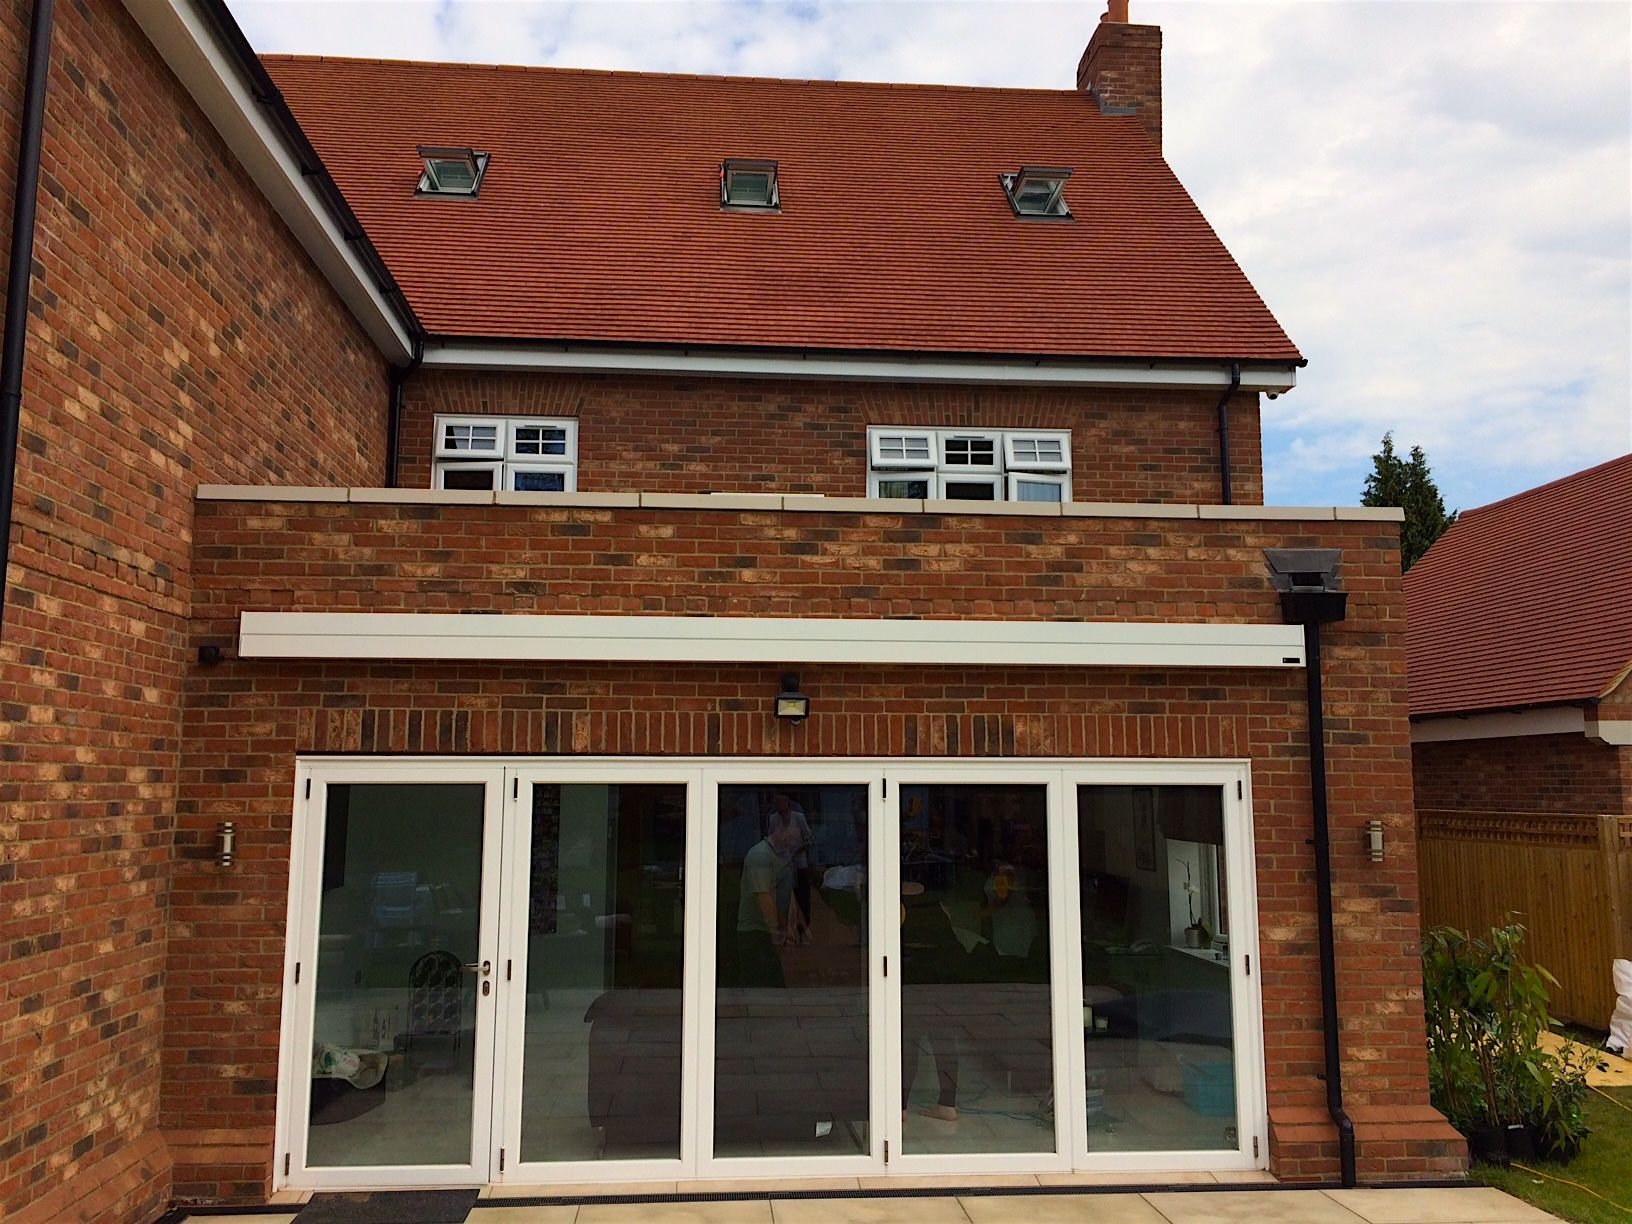 Patio Awning Installation in Roydon, Essex which we ...